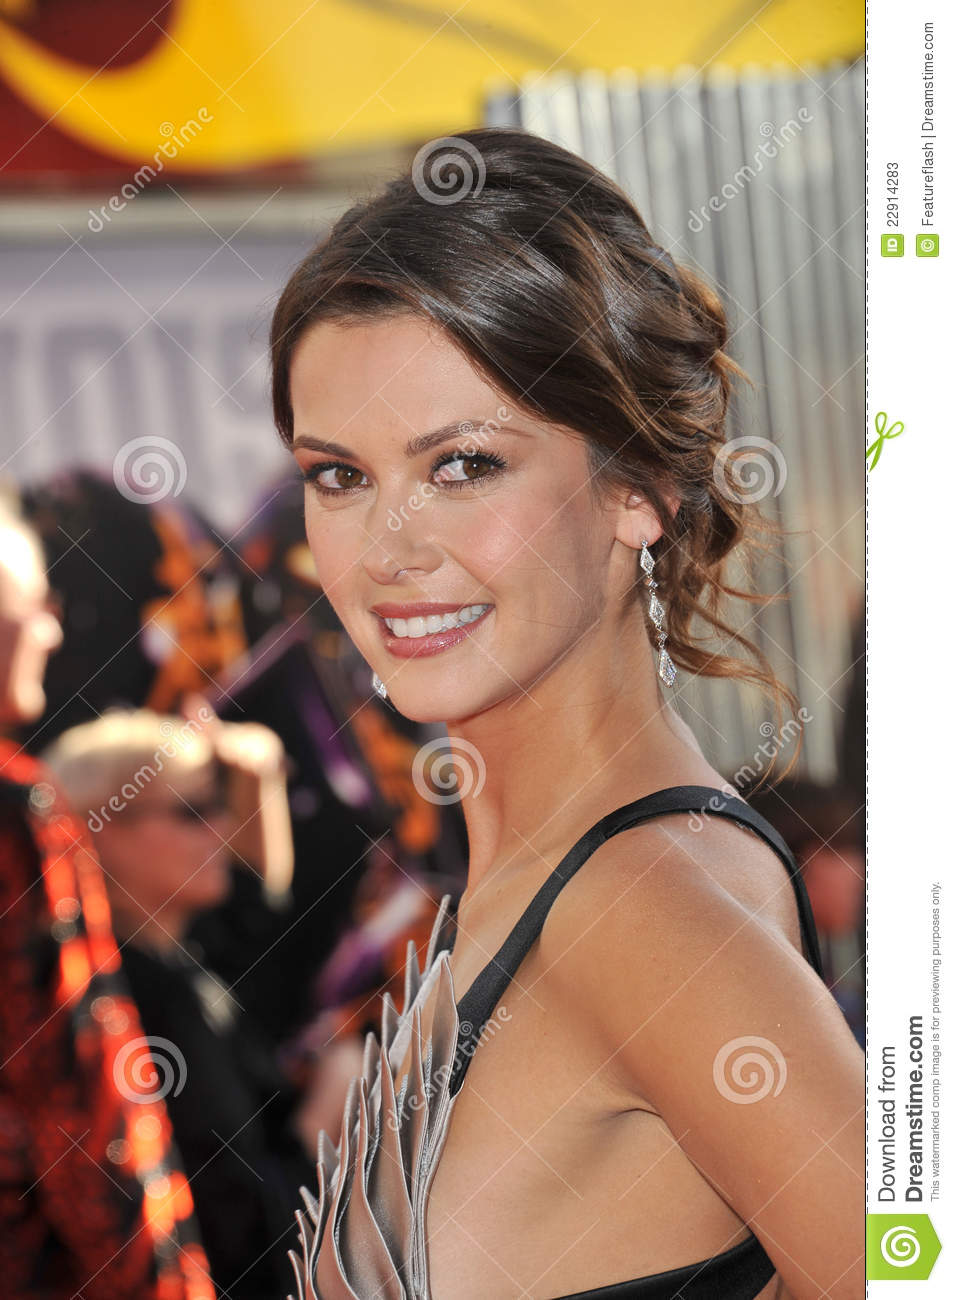 olga fonda instagramolga fonda twitter, olga fonda photoshoot, olga fonda esquire, olga fonda how i met your mother, olga fonda wikipedia, olga fonda bellazon, olga fonda instagram, olga fonda tumblr, olga fonda measurement, olga fonda, olga fonda wiki, olga fonda imdb, olga fonda bio, olga fonda breaking dawn, olga fonda facebook